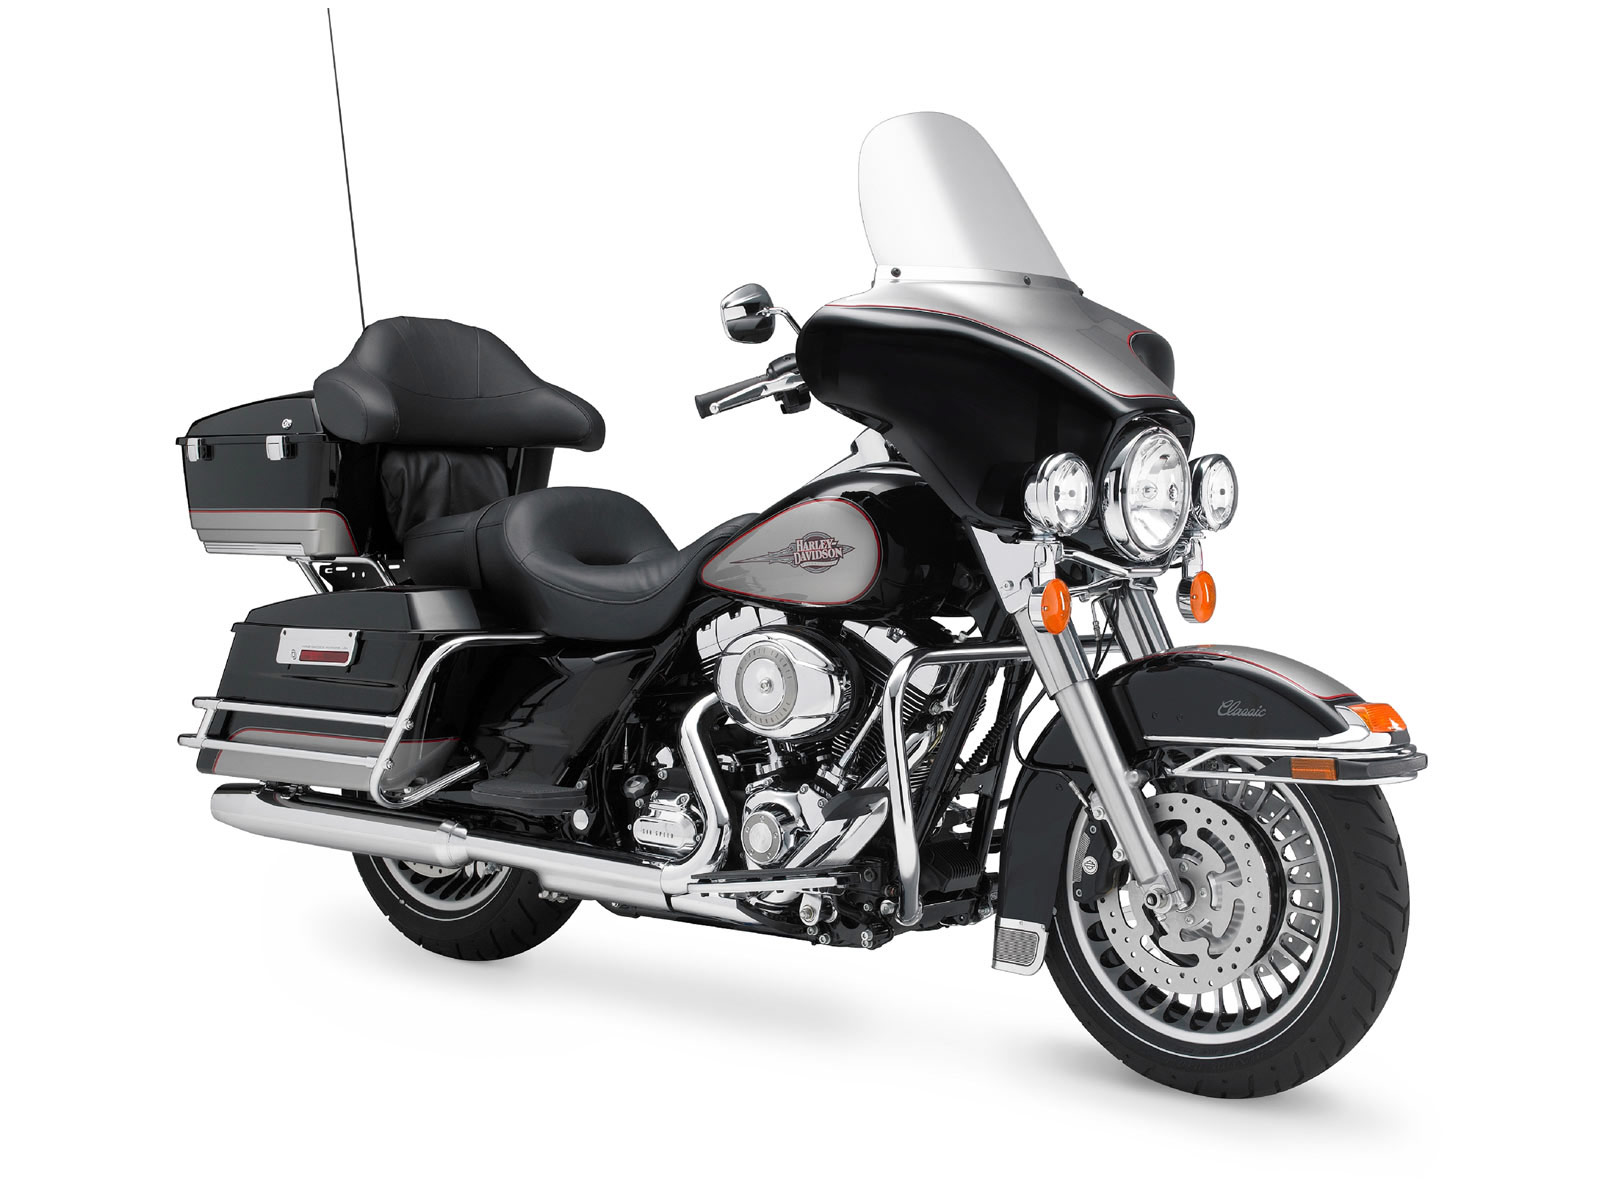 Harley-davidson u photo - 4